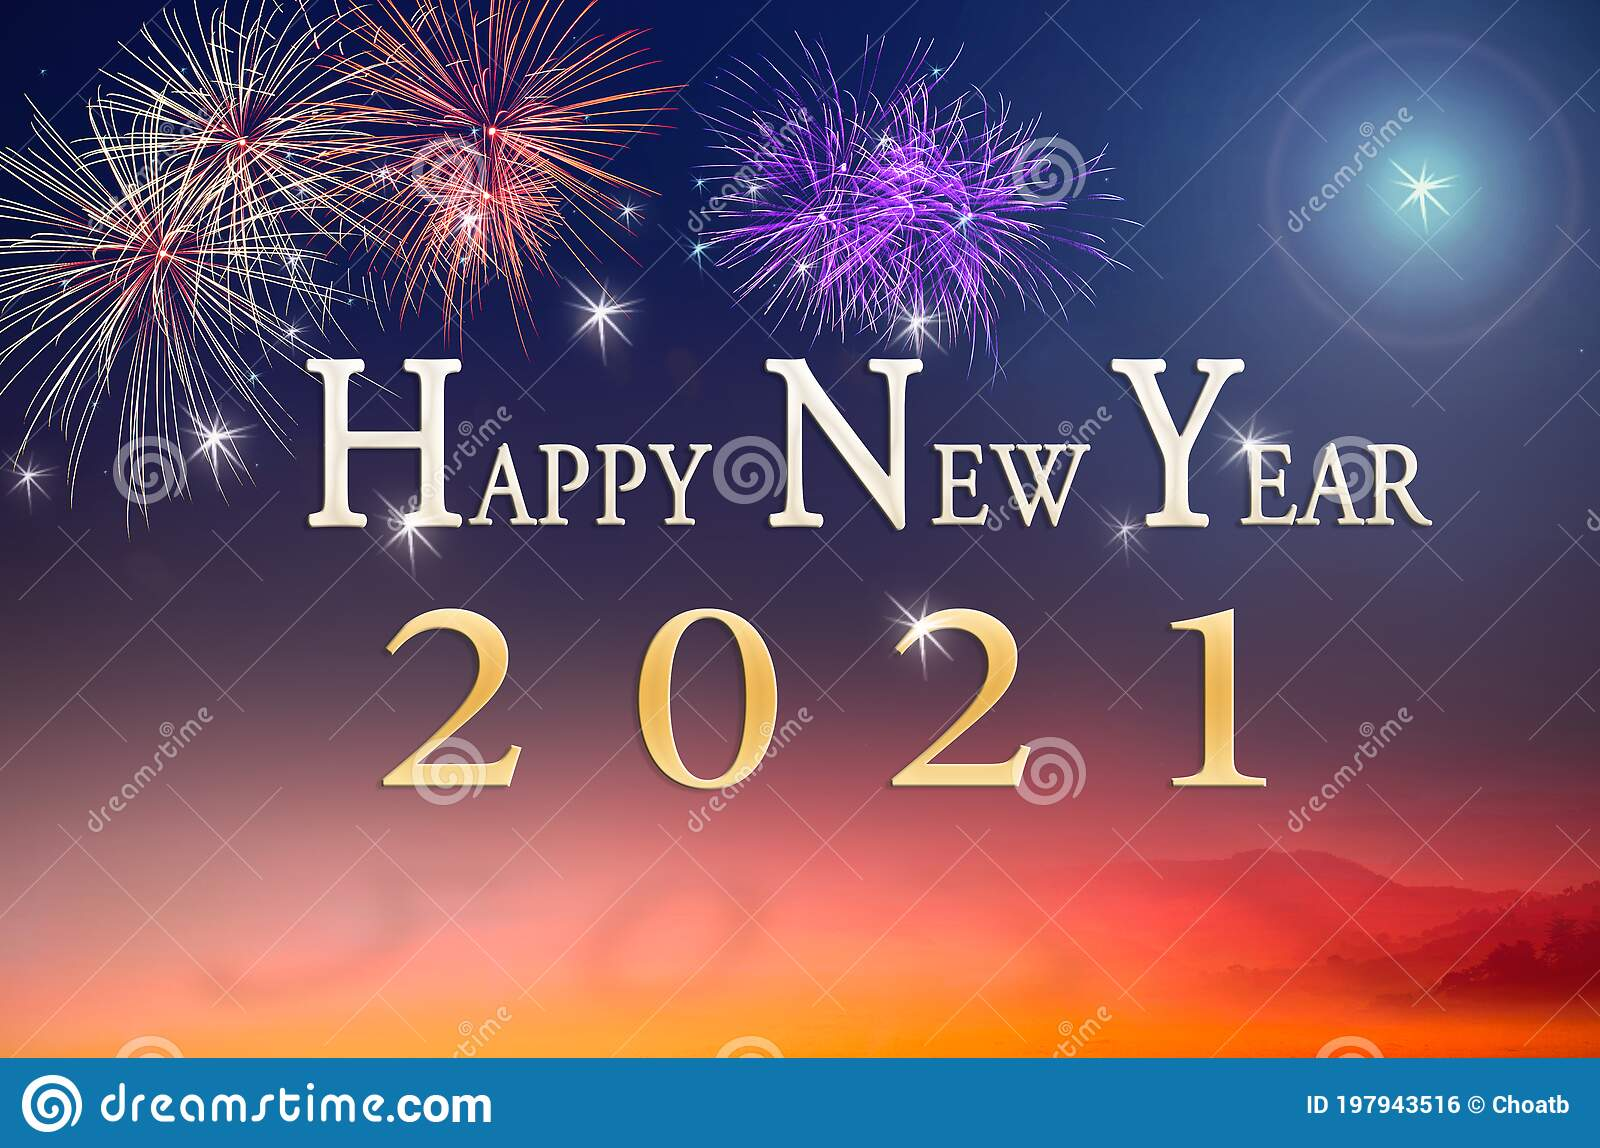 10 495 Happy New Year 2021 Photos Free Royalty Free Stock Photos From Dreamstime